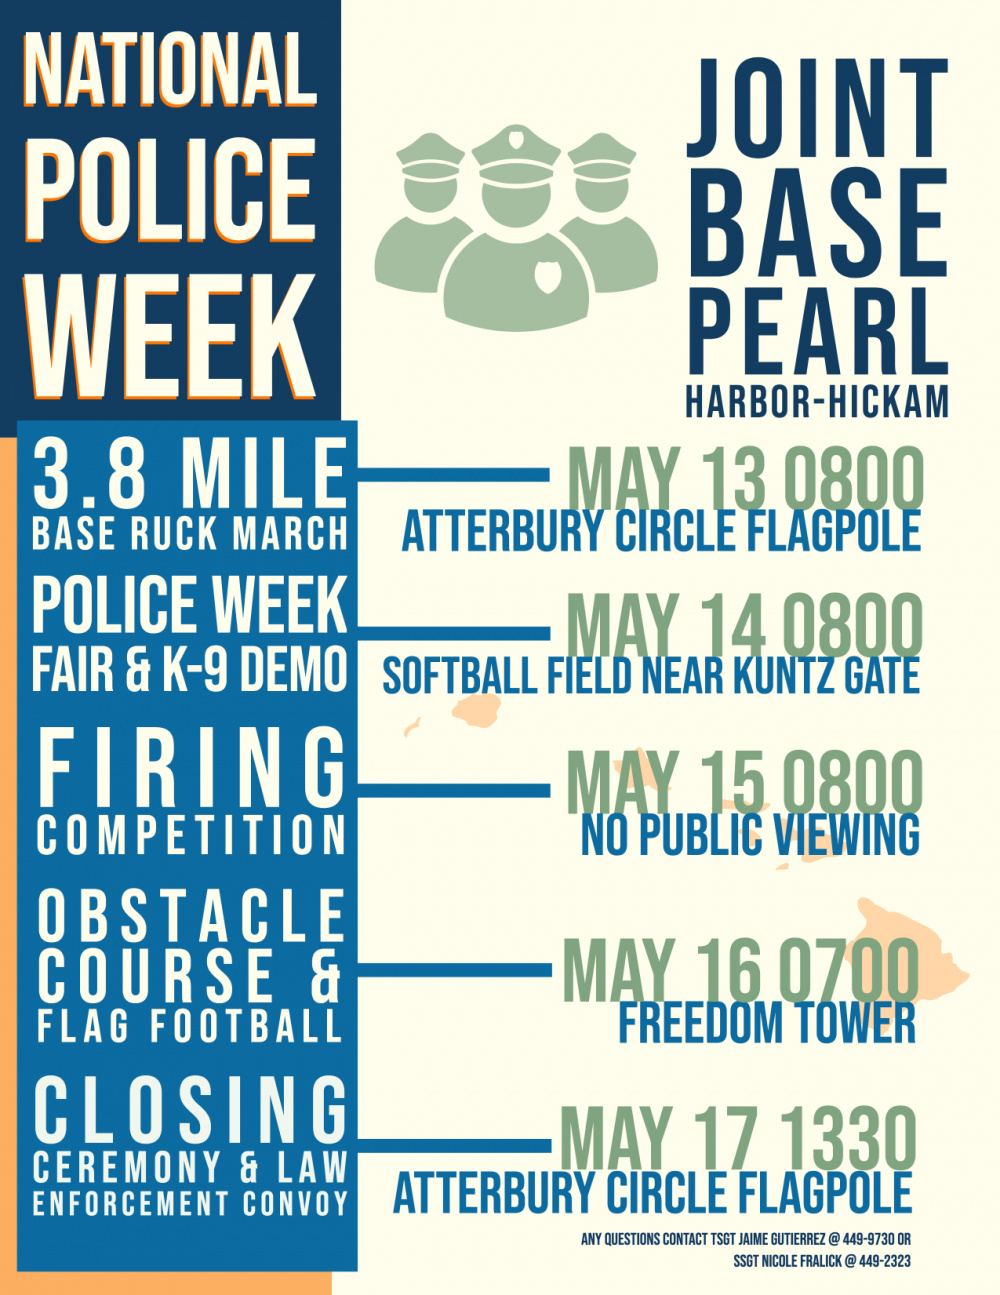 National Police Week Events - Joint Base Pearl Harbor-Hickam